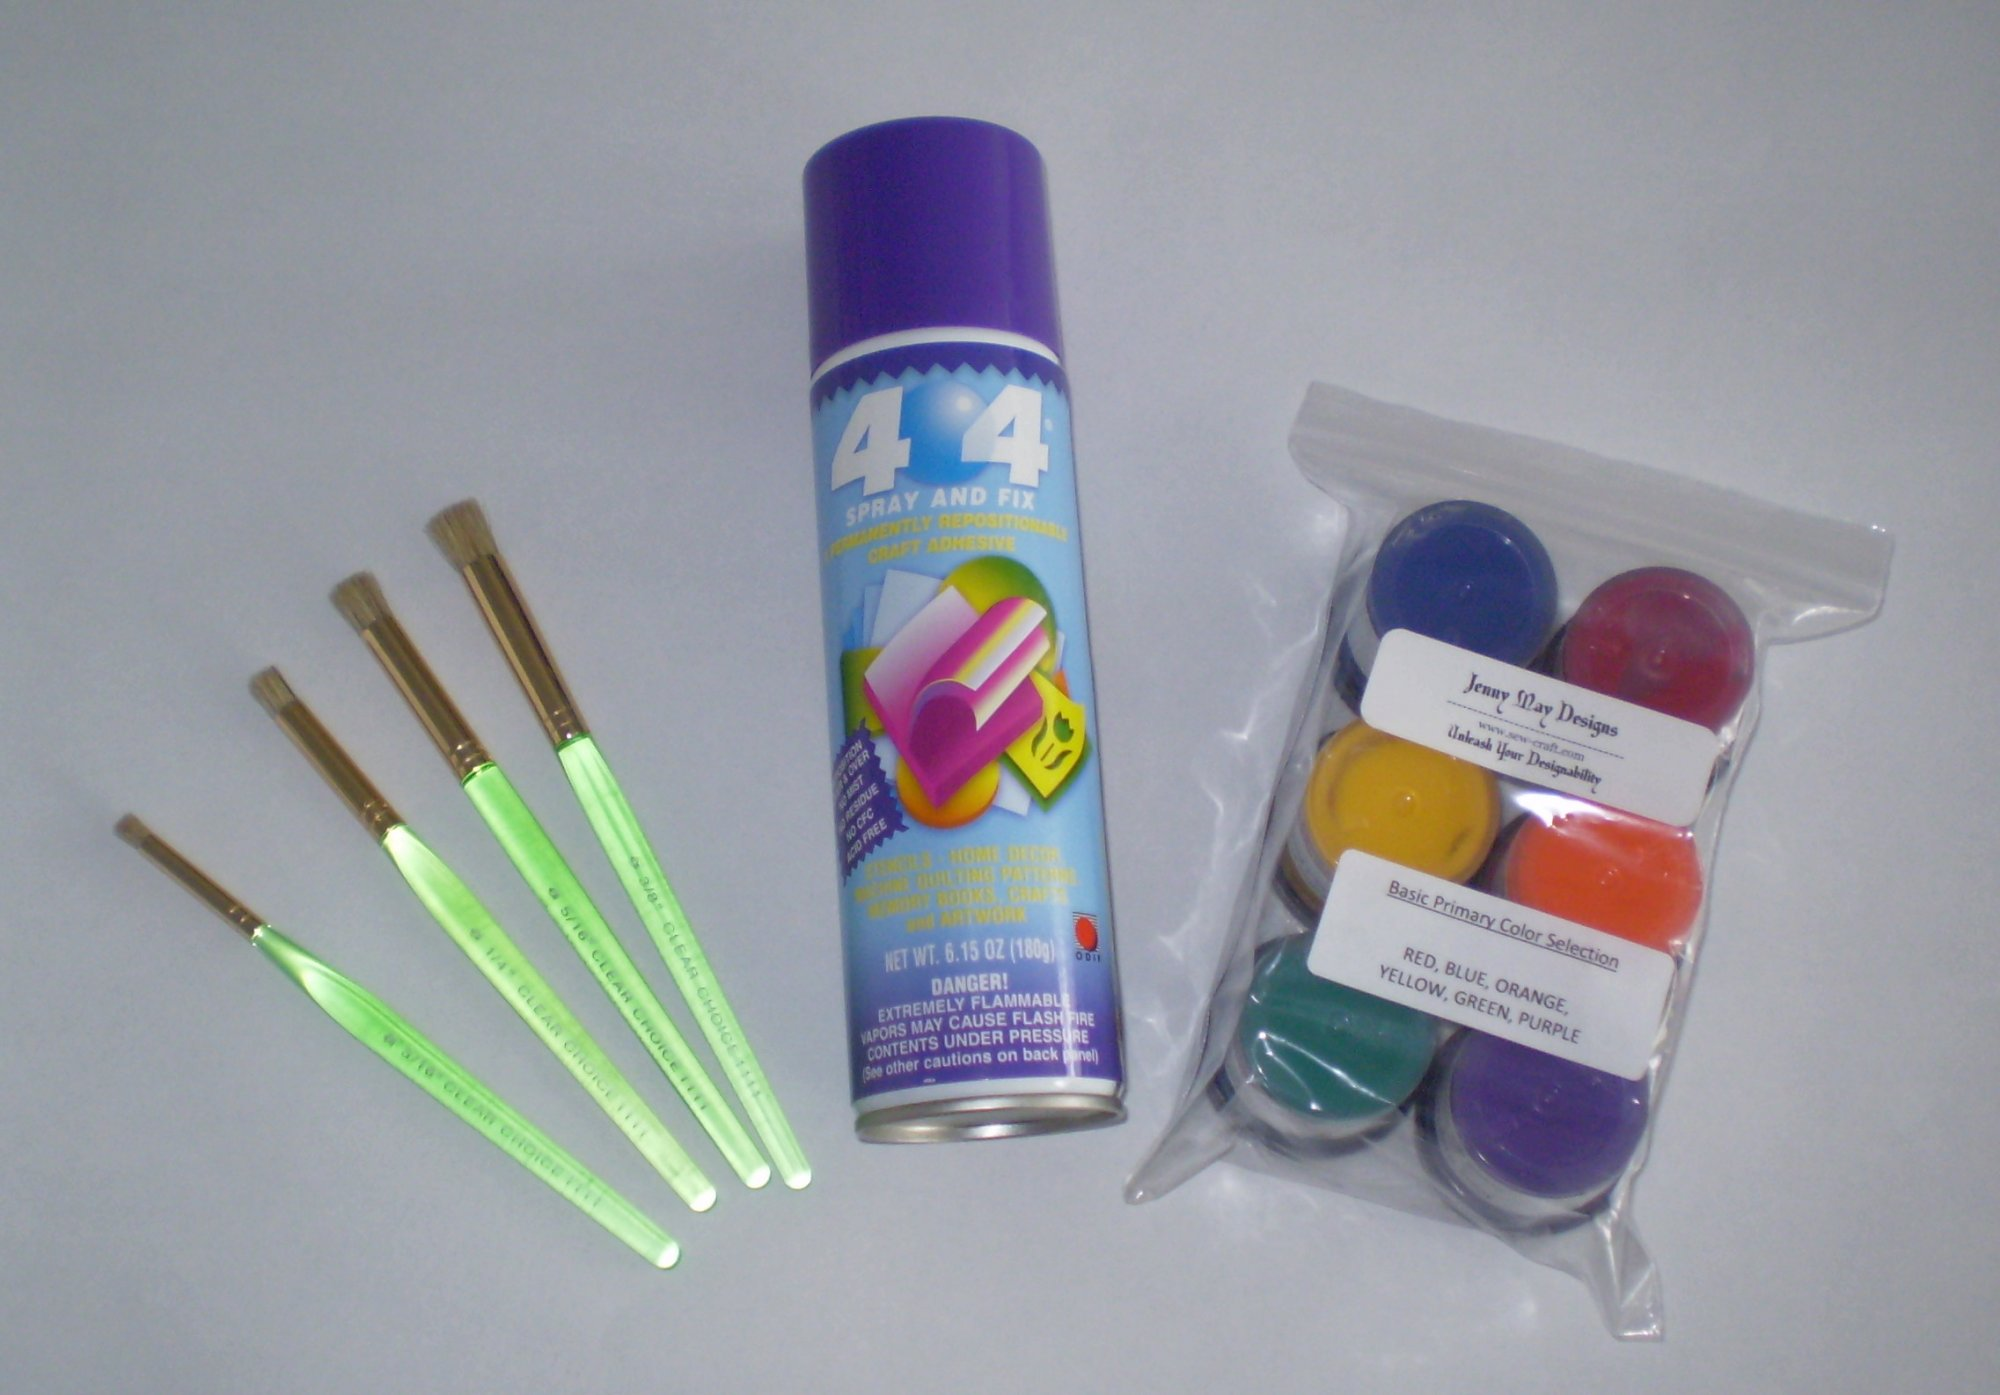 bright paint color starter kit for stenciling and fabric painting - 6 colors